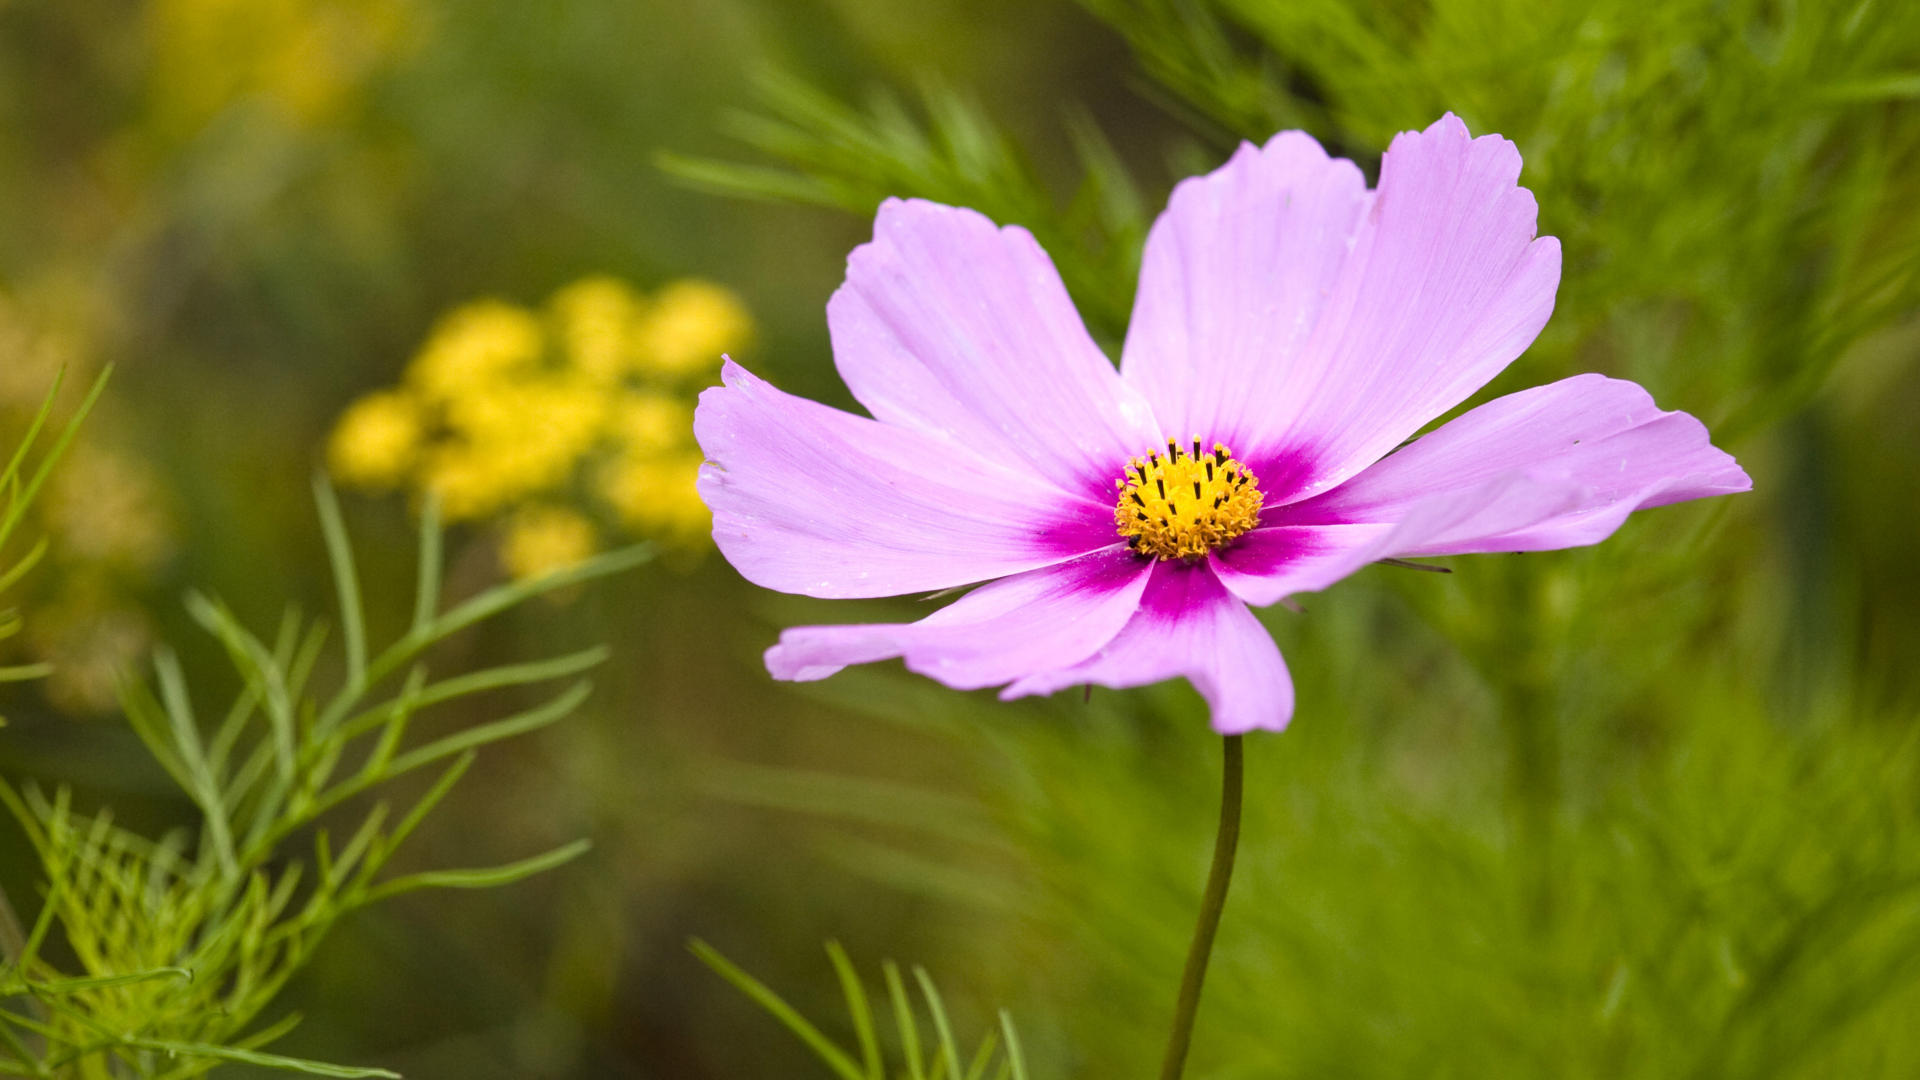 HD Wallpapers 1080p Purple Cosmos Flower 1920x1080